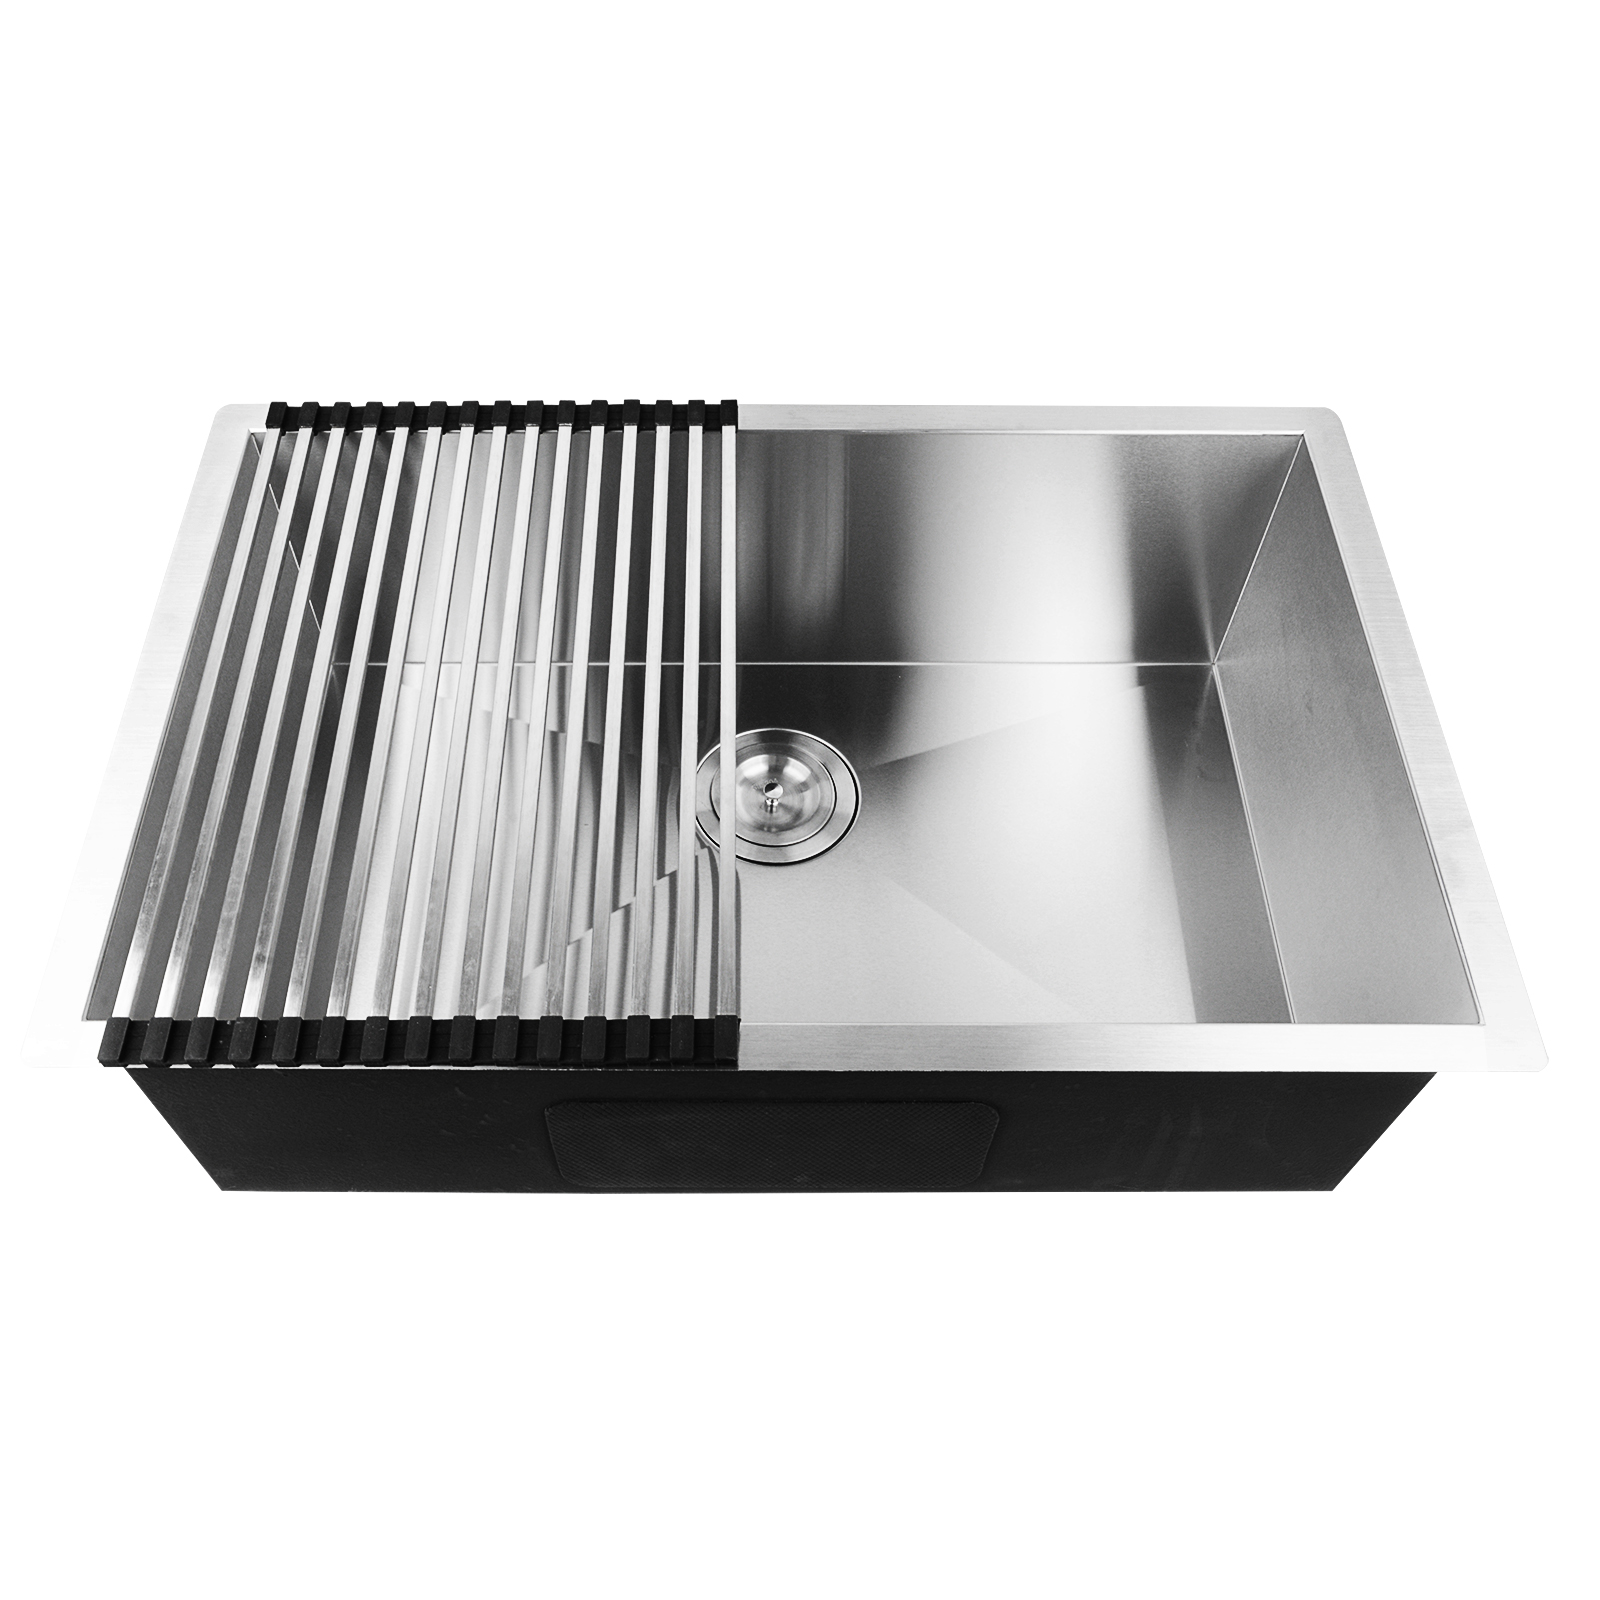 Commercial Stainless Steel Single Bowl Kitchen Sink Undermount 19 Gauge Kitchen waste stopper floor drain MAYITR swanstone dual mount composite 33x22x10 1 hole single bowl kitchen sink in tahiti ivory tahiti ivory